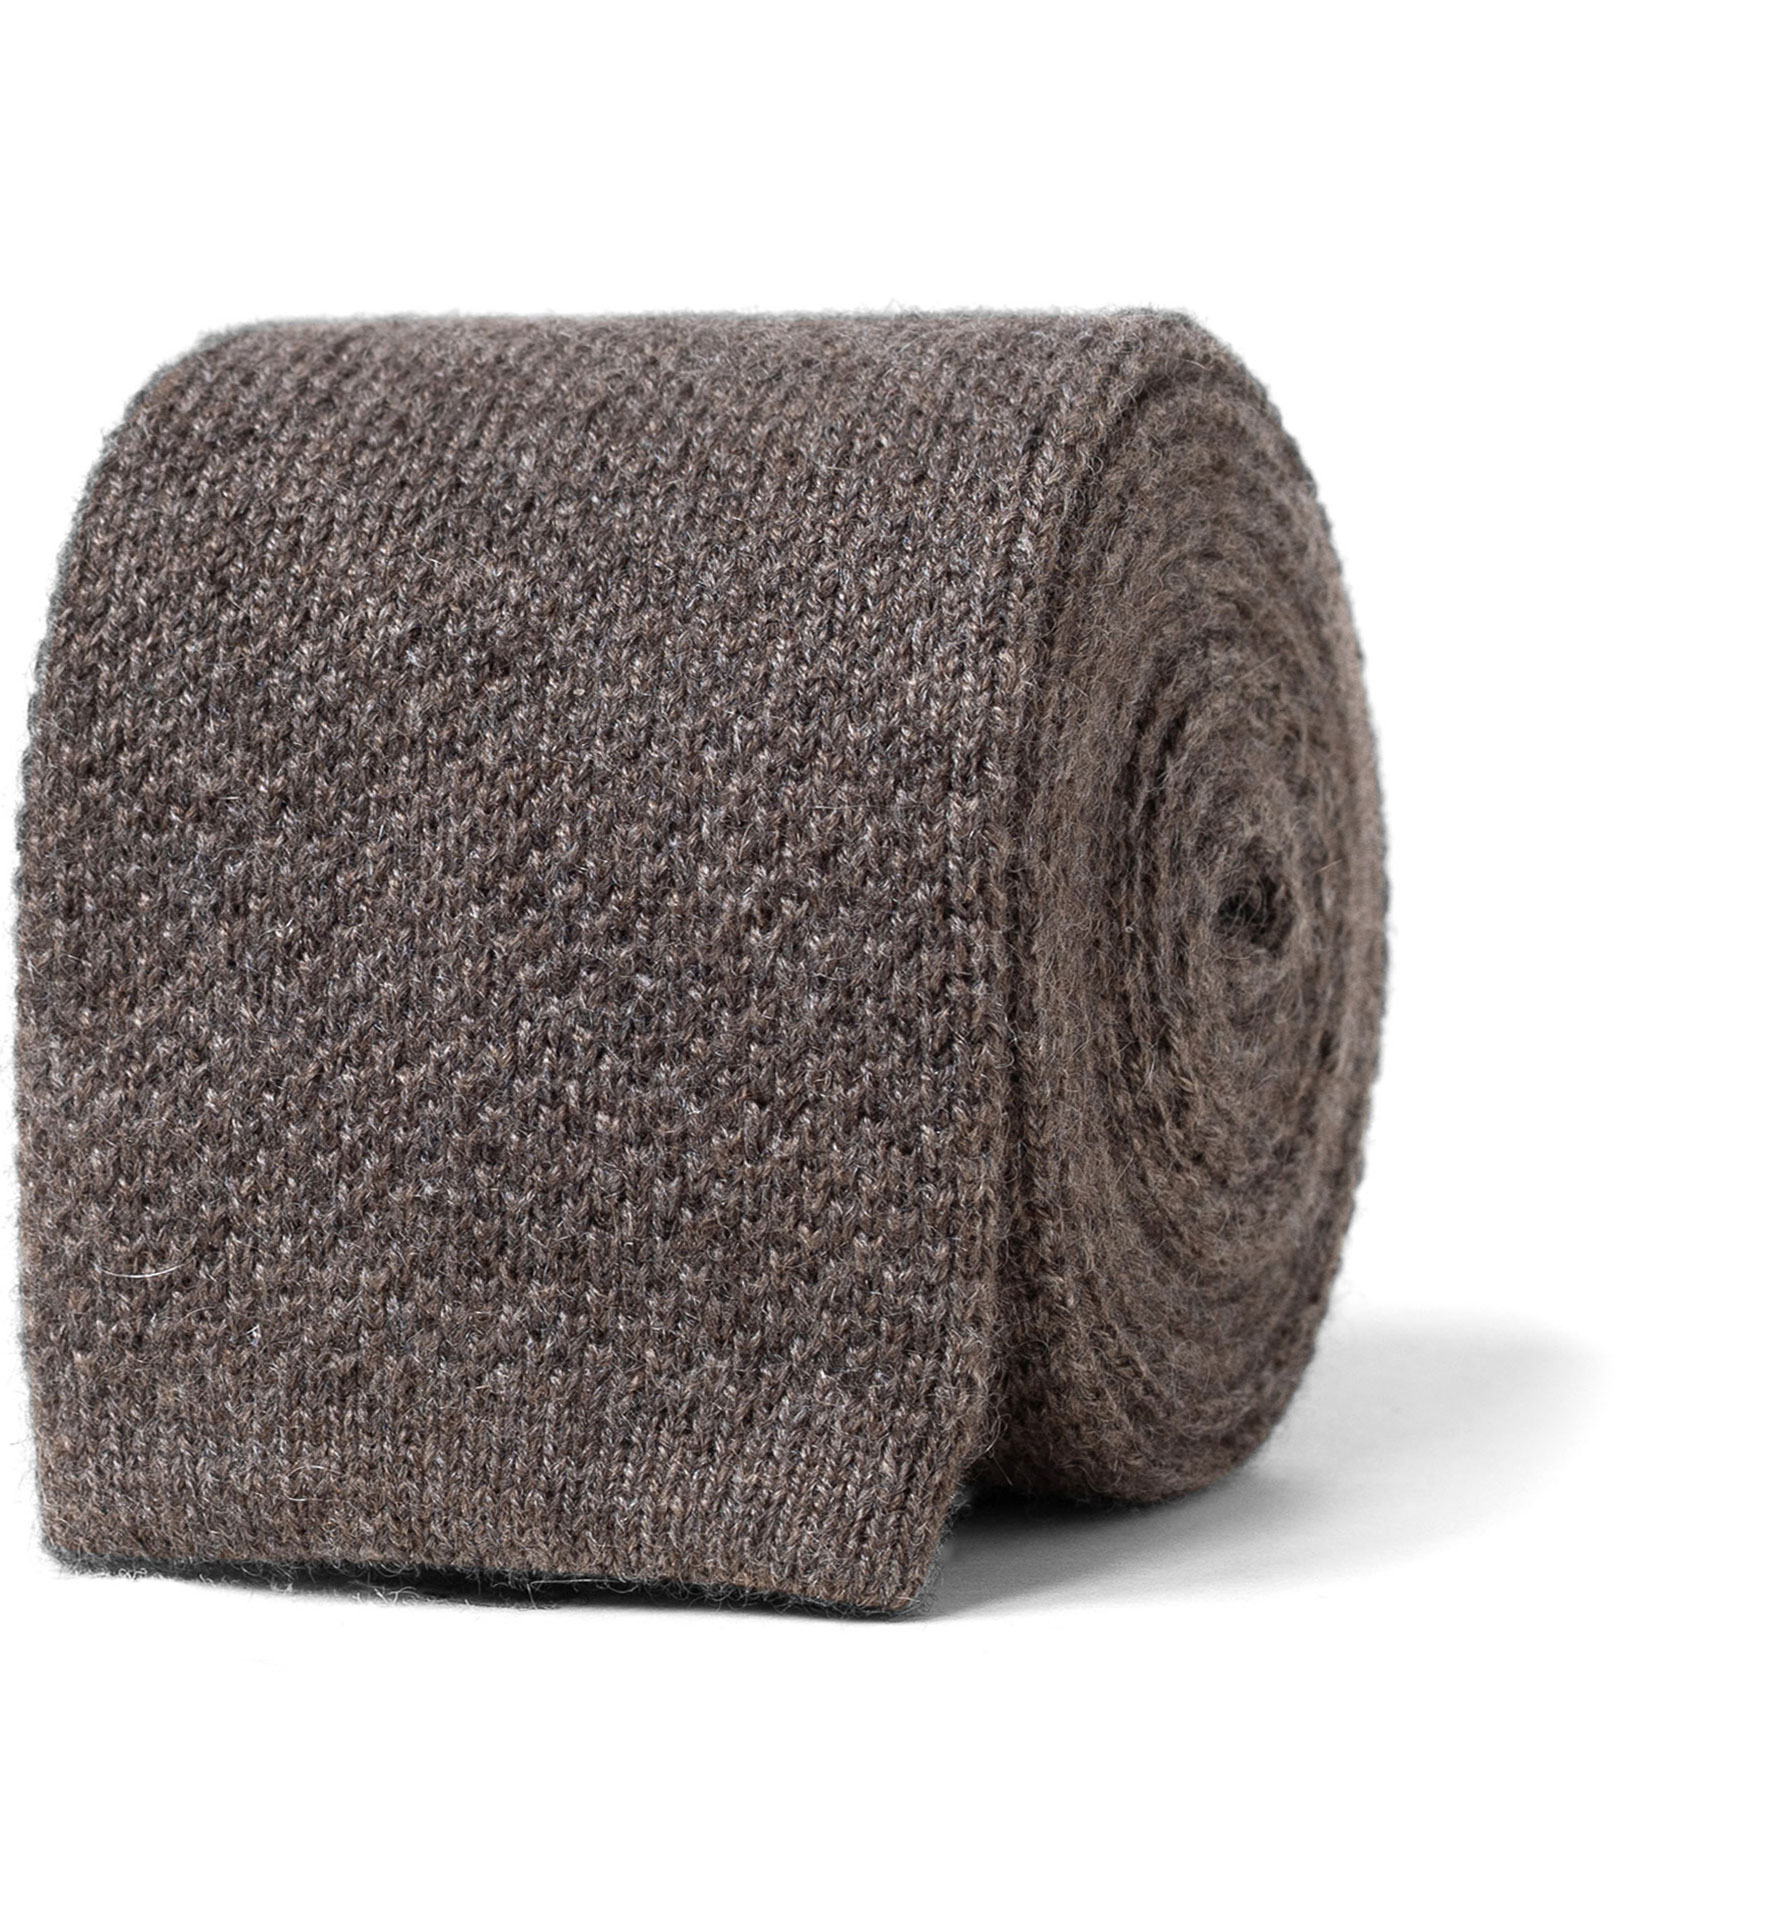 Zoom Image of Taupe Cashmere Knit Tie